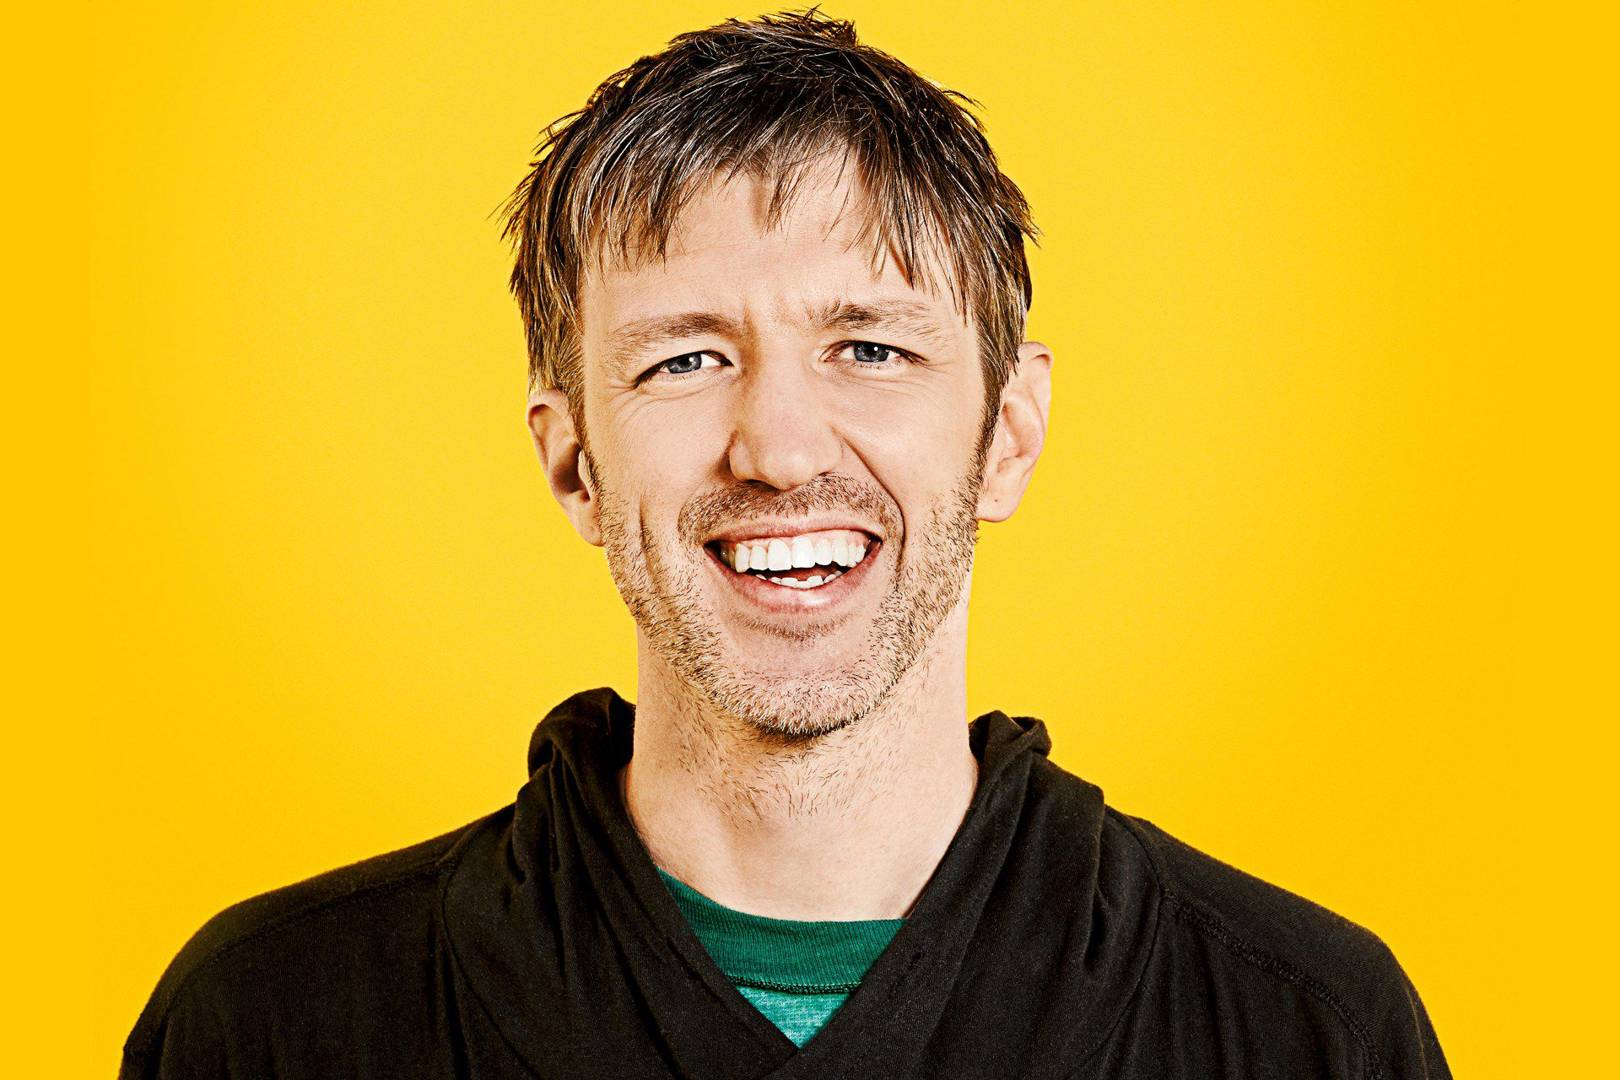 Hack OkCupid, acquire love  This guy did | WIRED UK